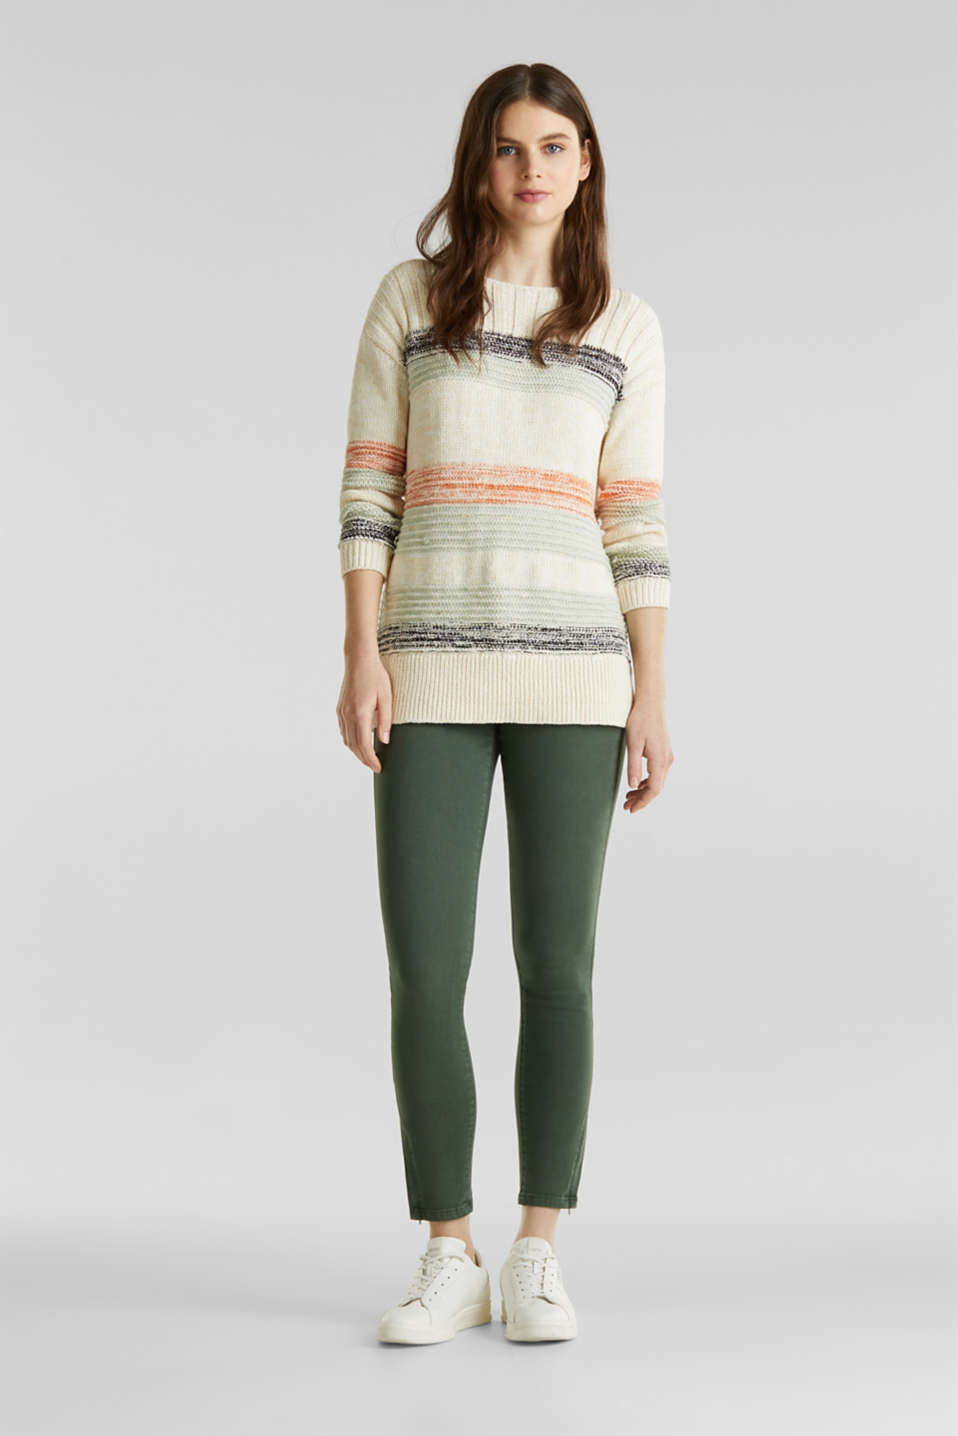 Jumper with textured stripes, 100% cotton, LIGHT AQUA GREEN 3, detail image number 1